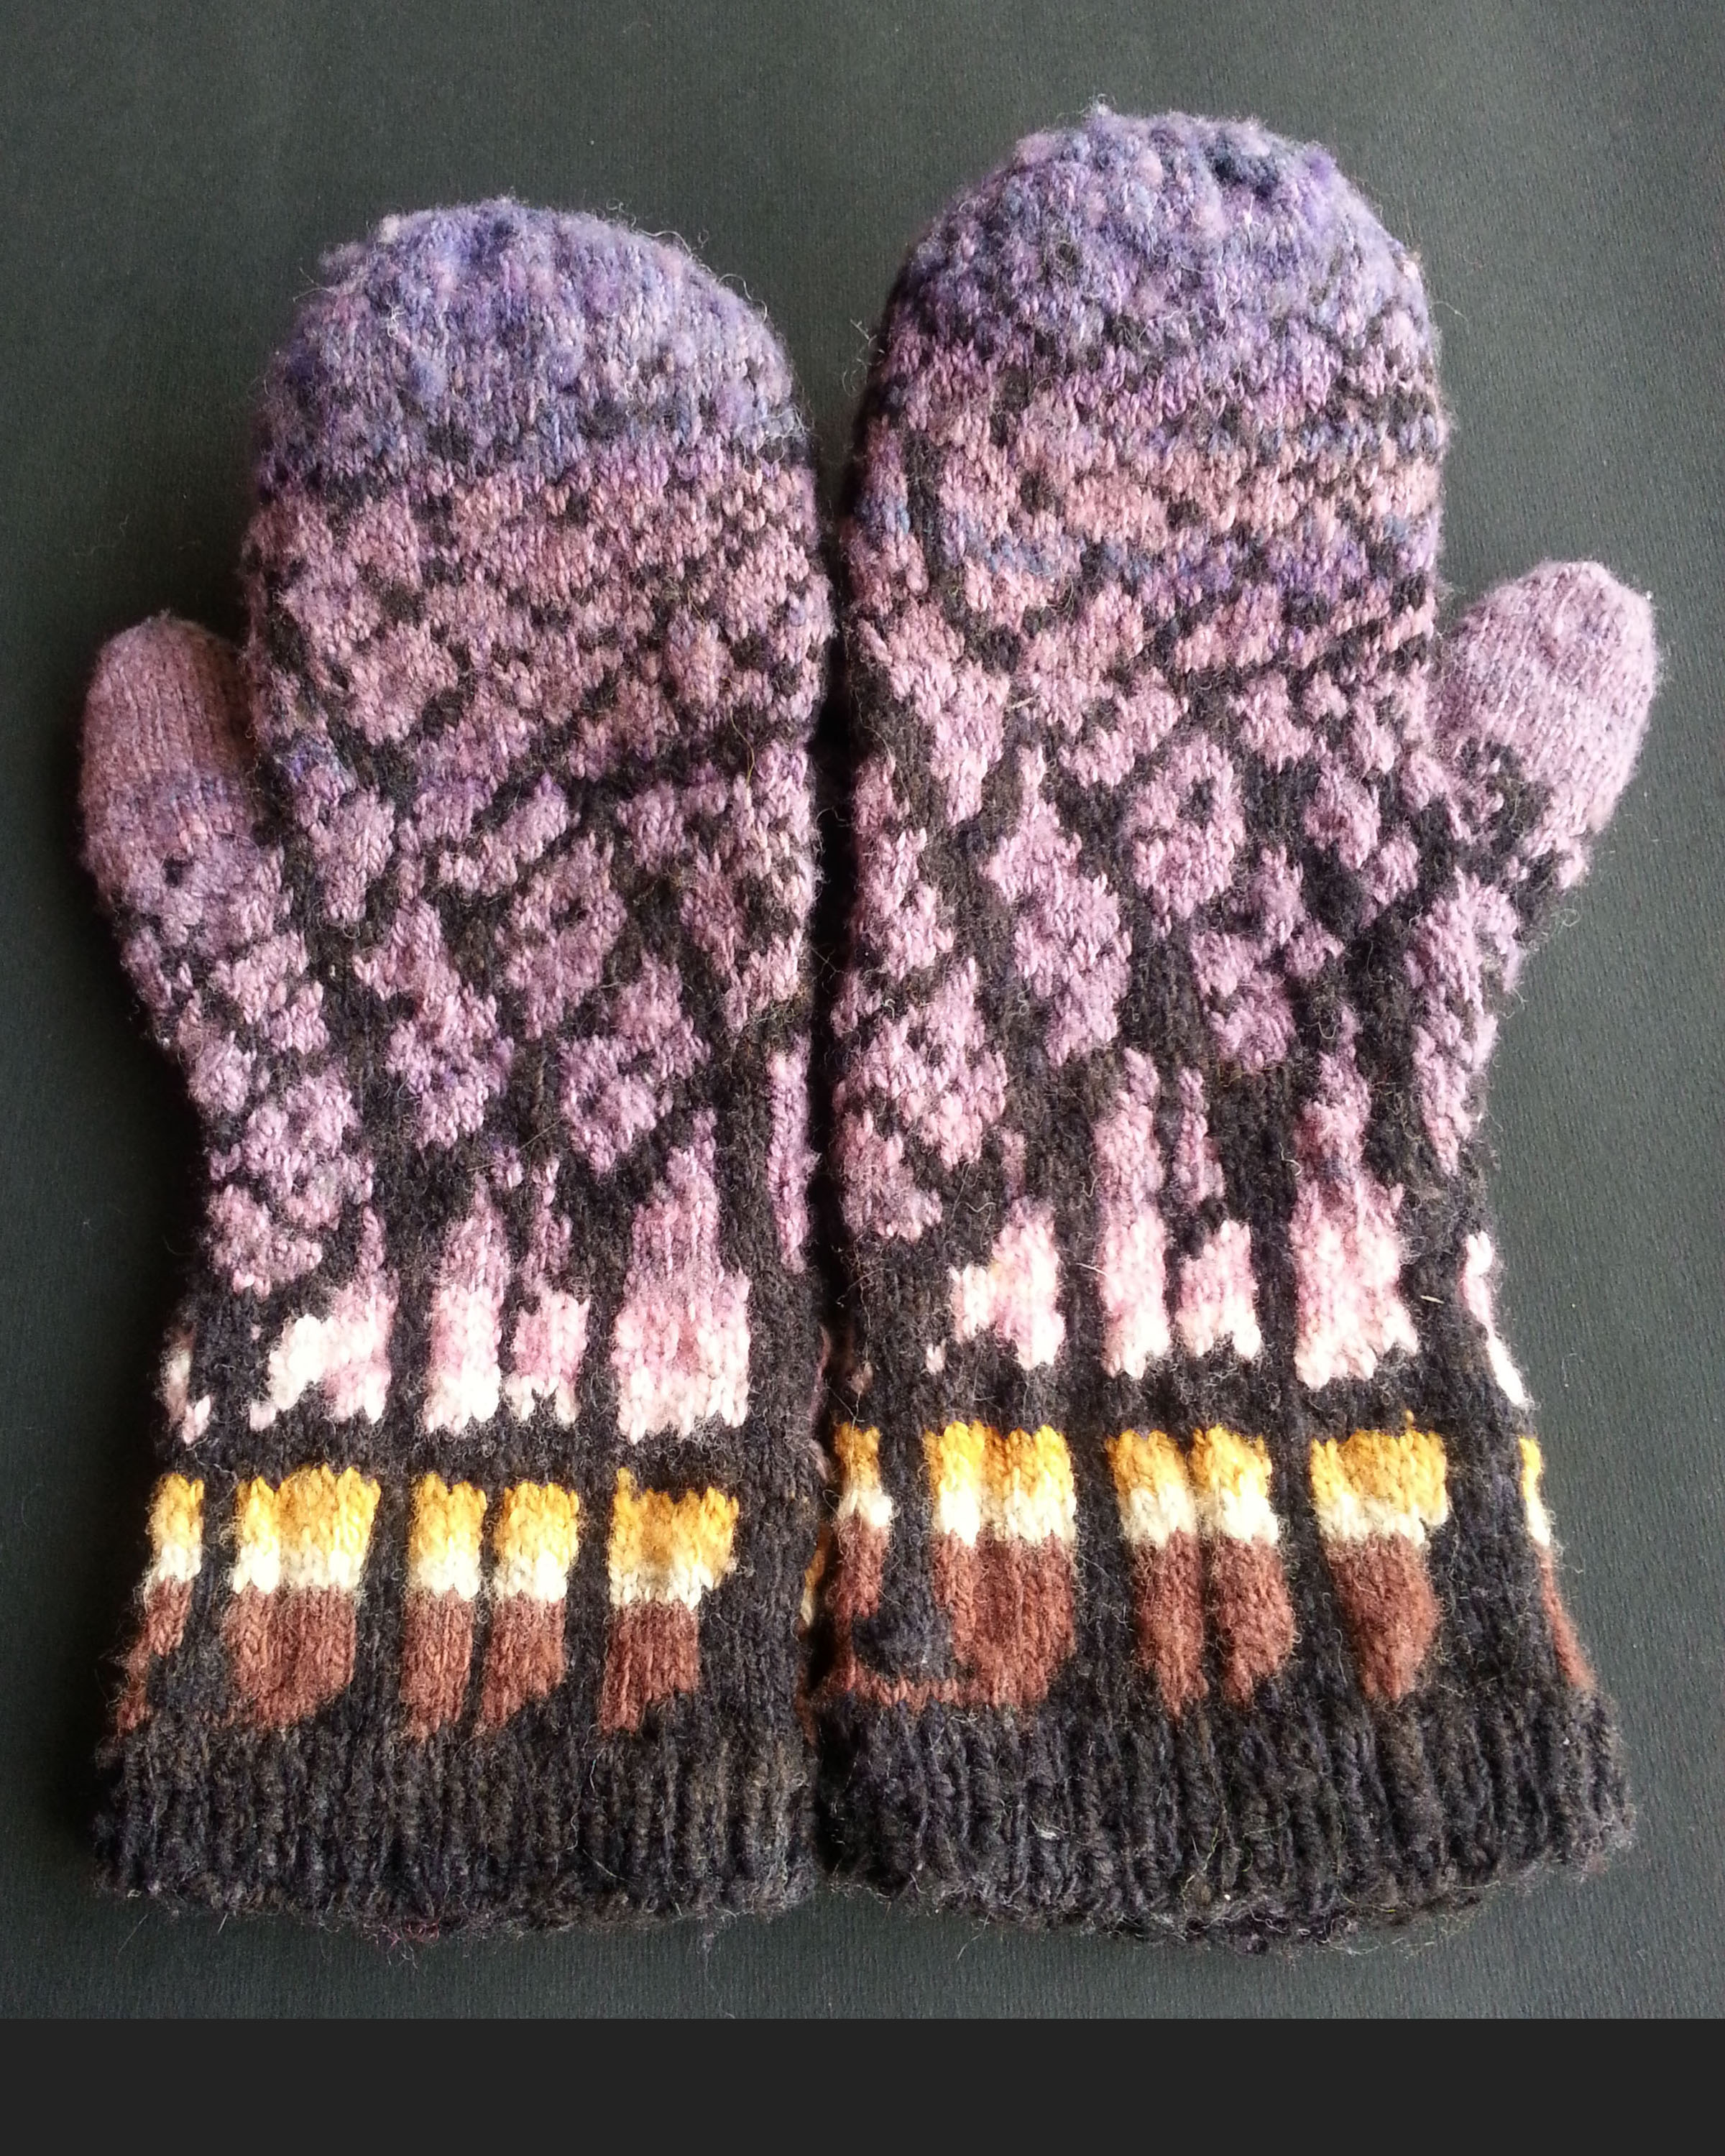 3 – Gloves using the dyed yarn to match the photograph